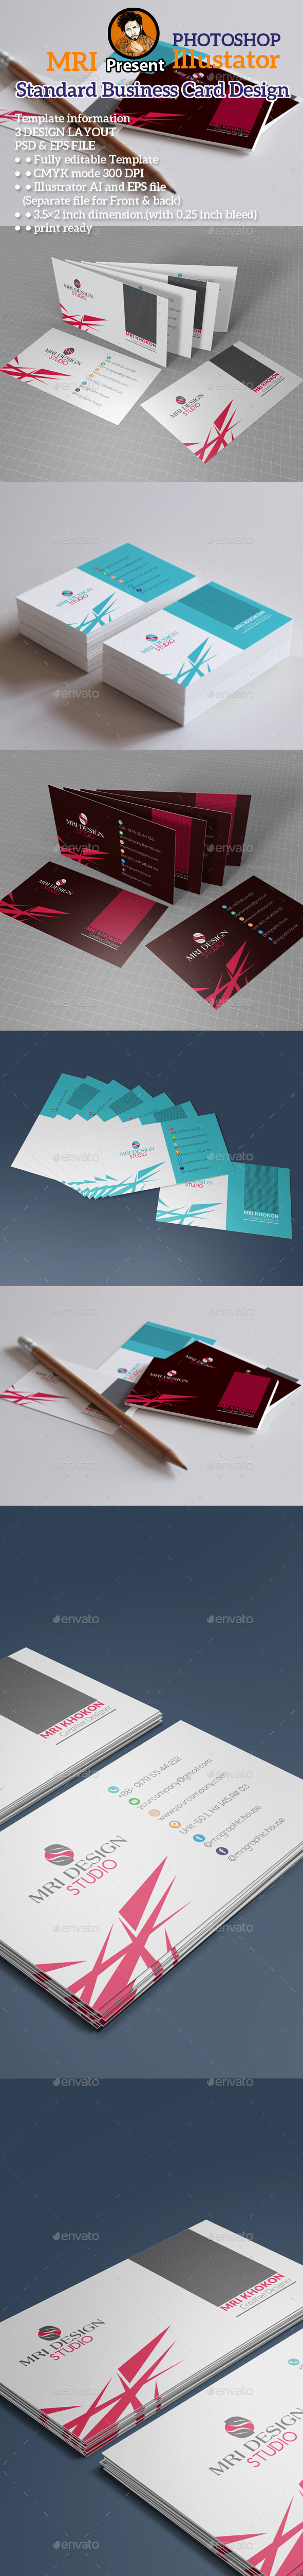 Standard Business Card - Business Cards Print Templates